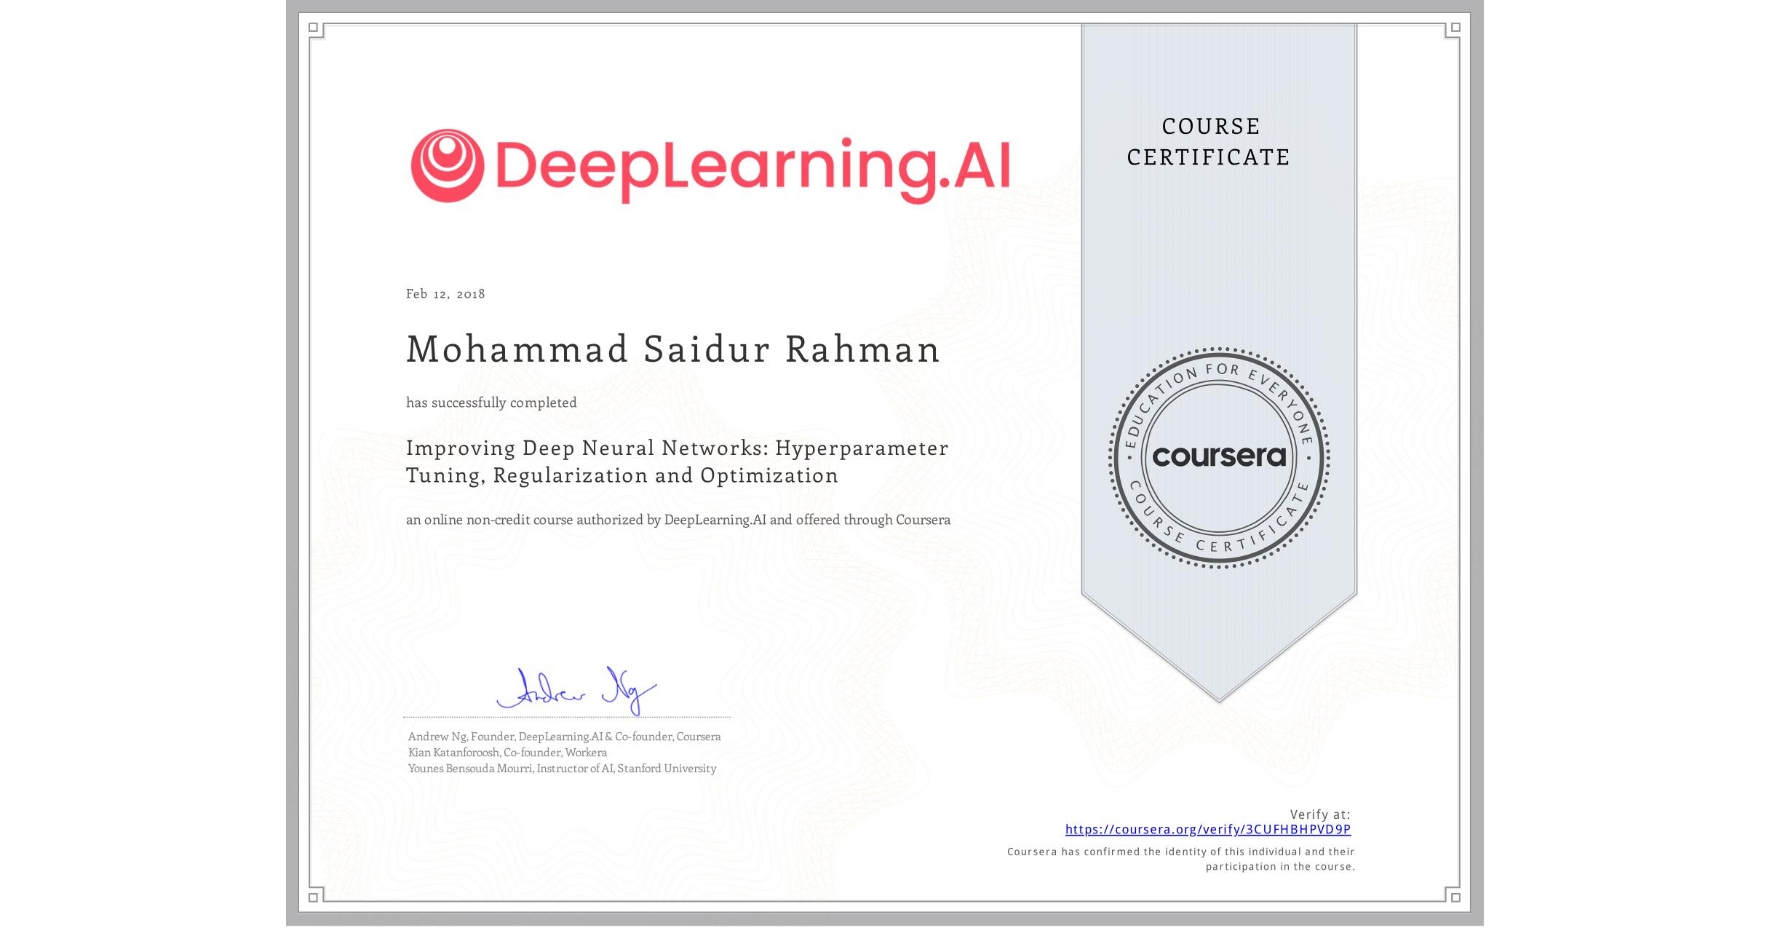 View certificate for Mohammad Saidur  Rahman, Improving Deep Neural Networks: Hyperparameter tuning, Regularization and Optimization, an online non-credit course authorized by DeepLearning.AI and offered through Coursera